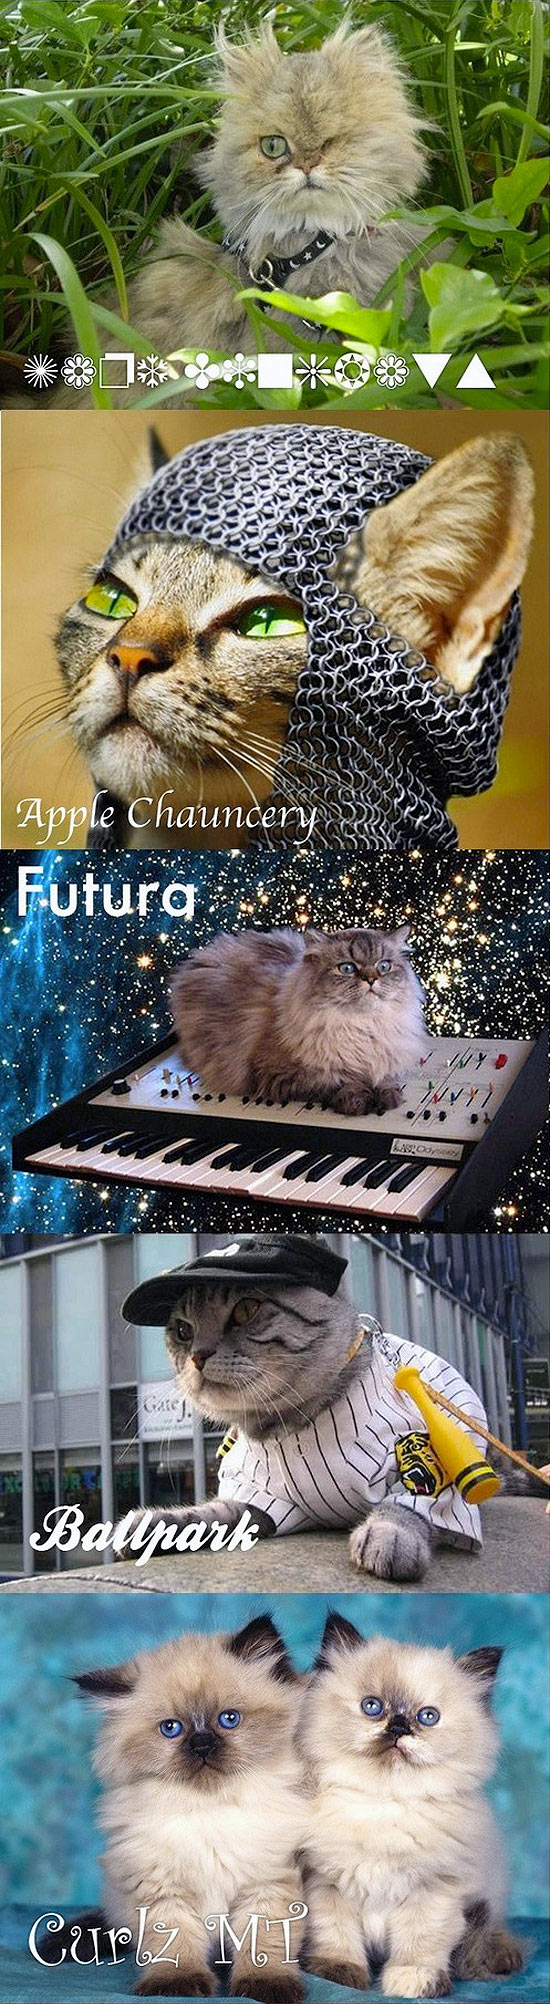 Les chats & les typos : Dings, Futura, Apple